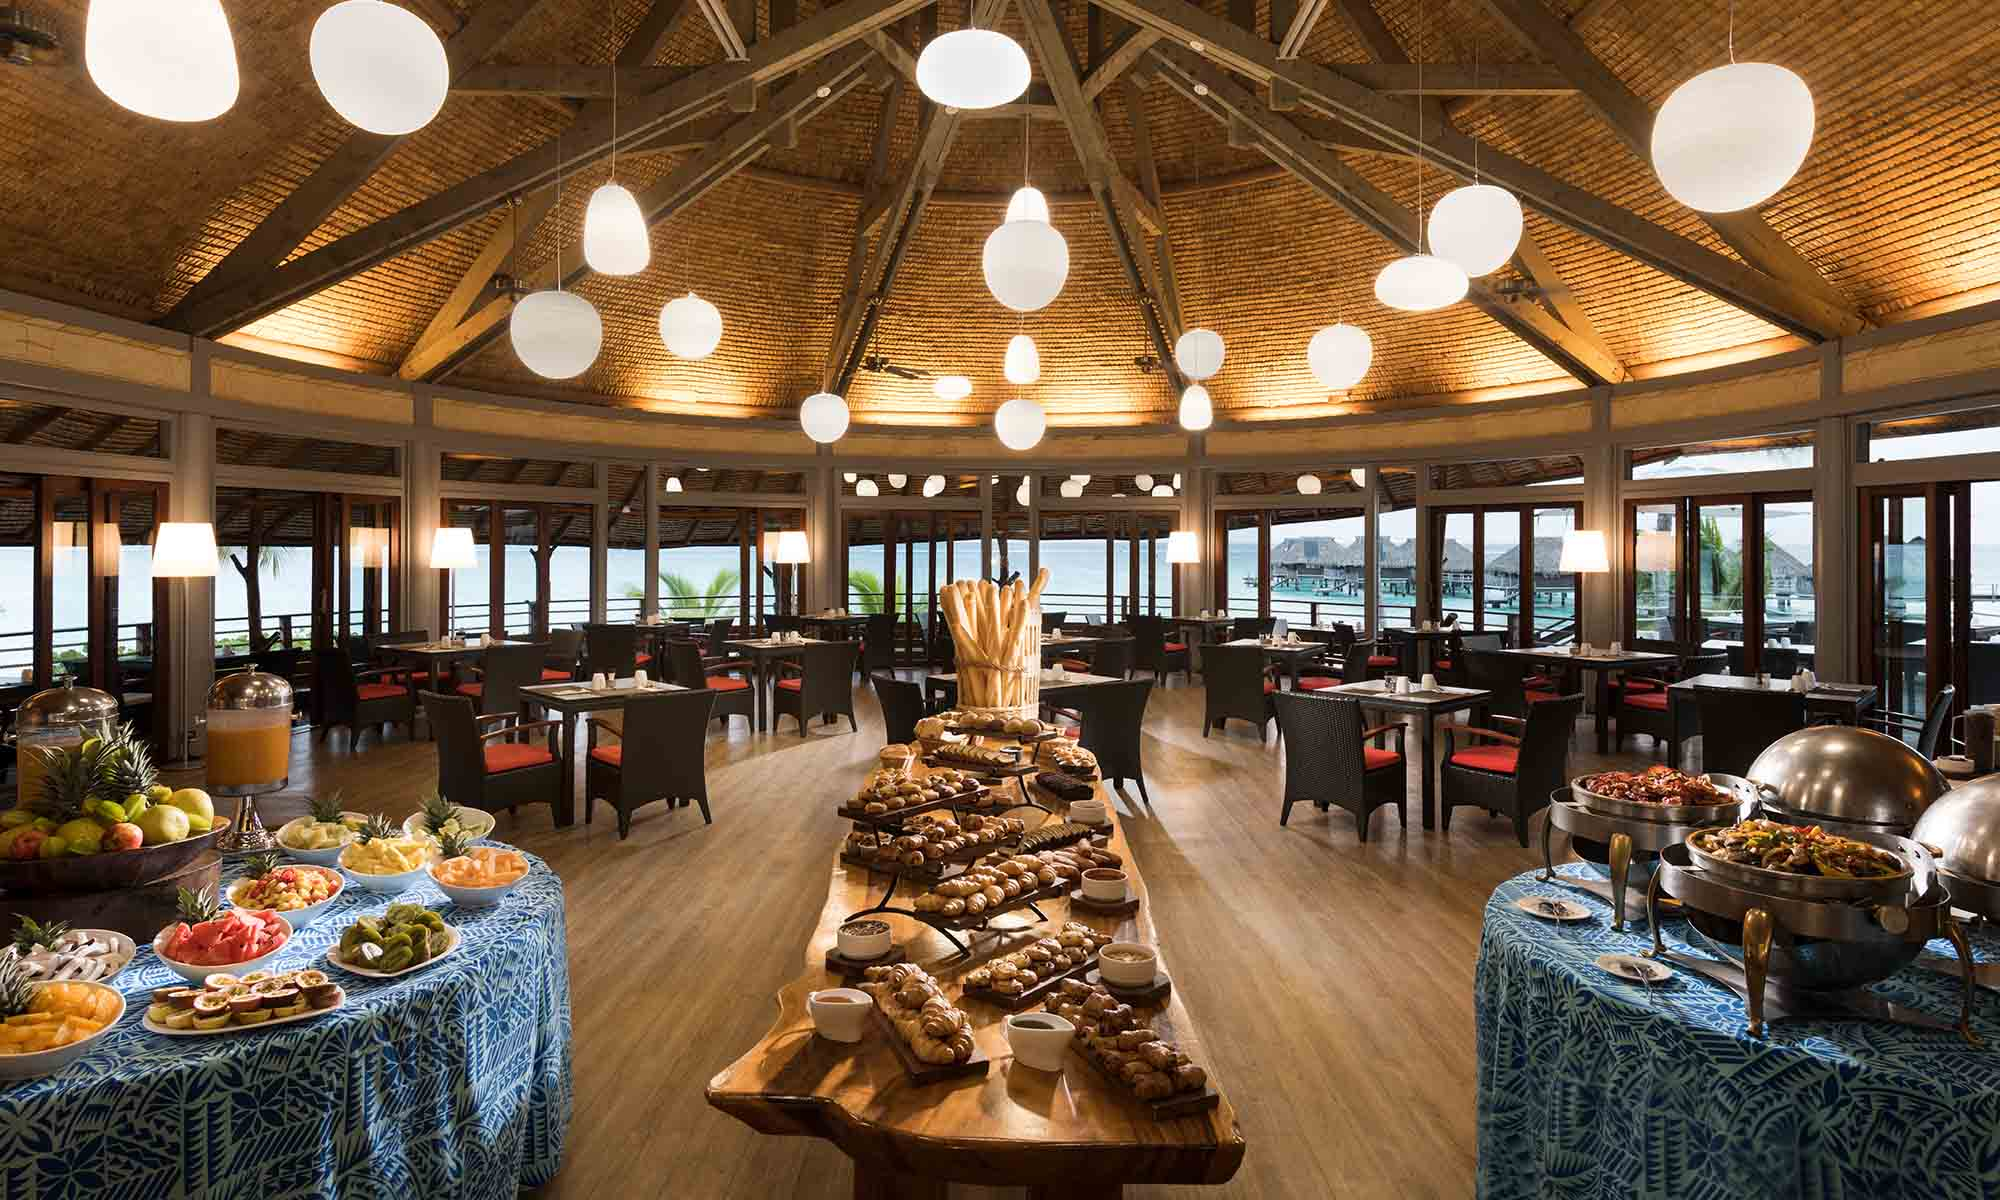 Hilton Moorea, Breakfast Buffet at Arii Vahine Restaurant